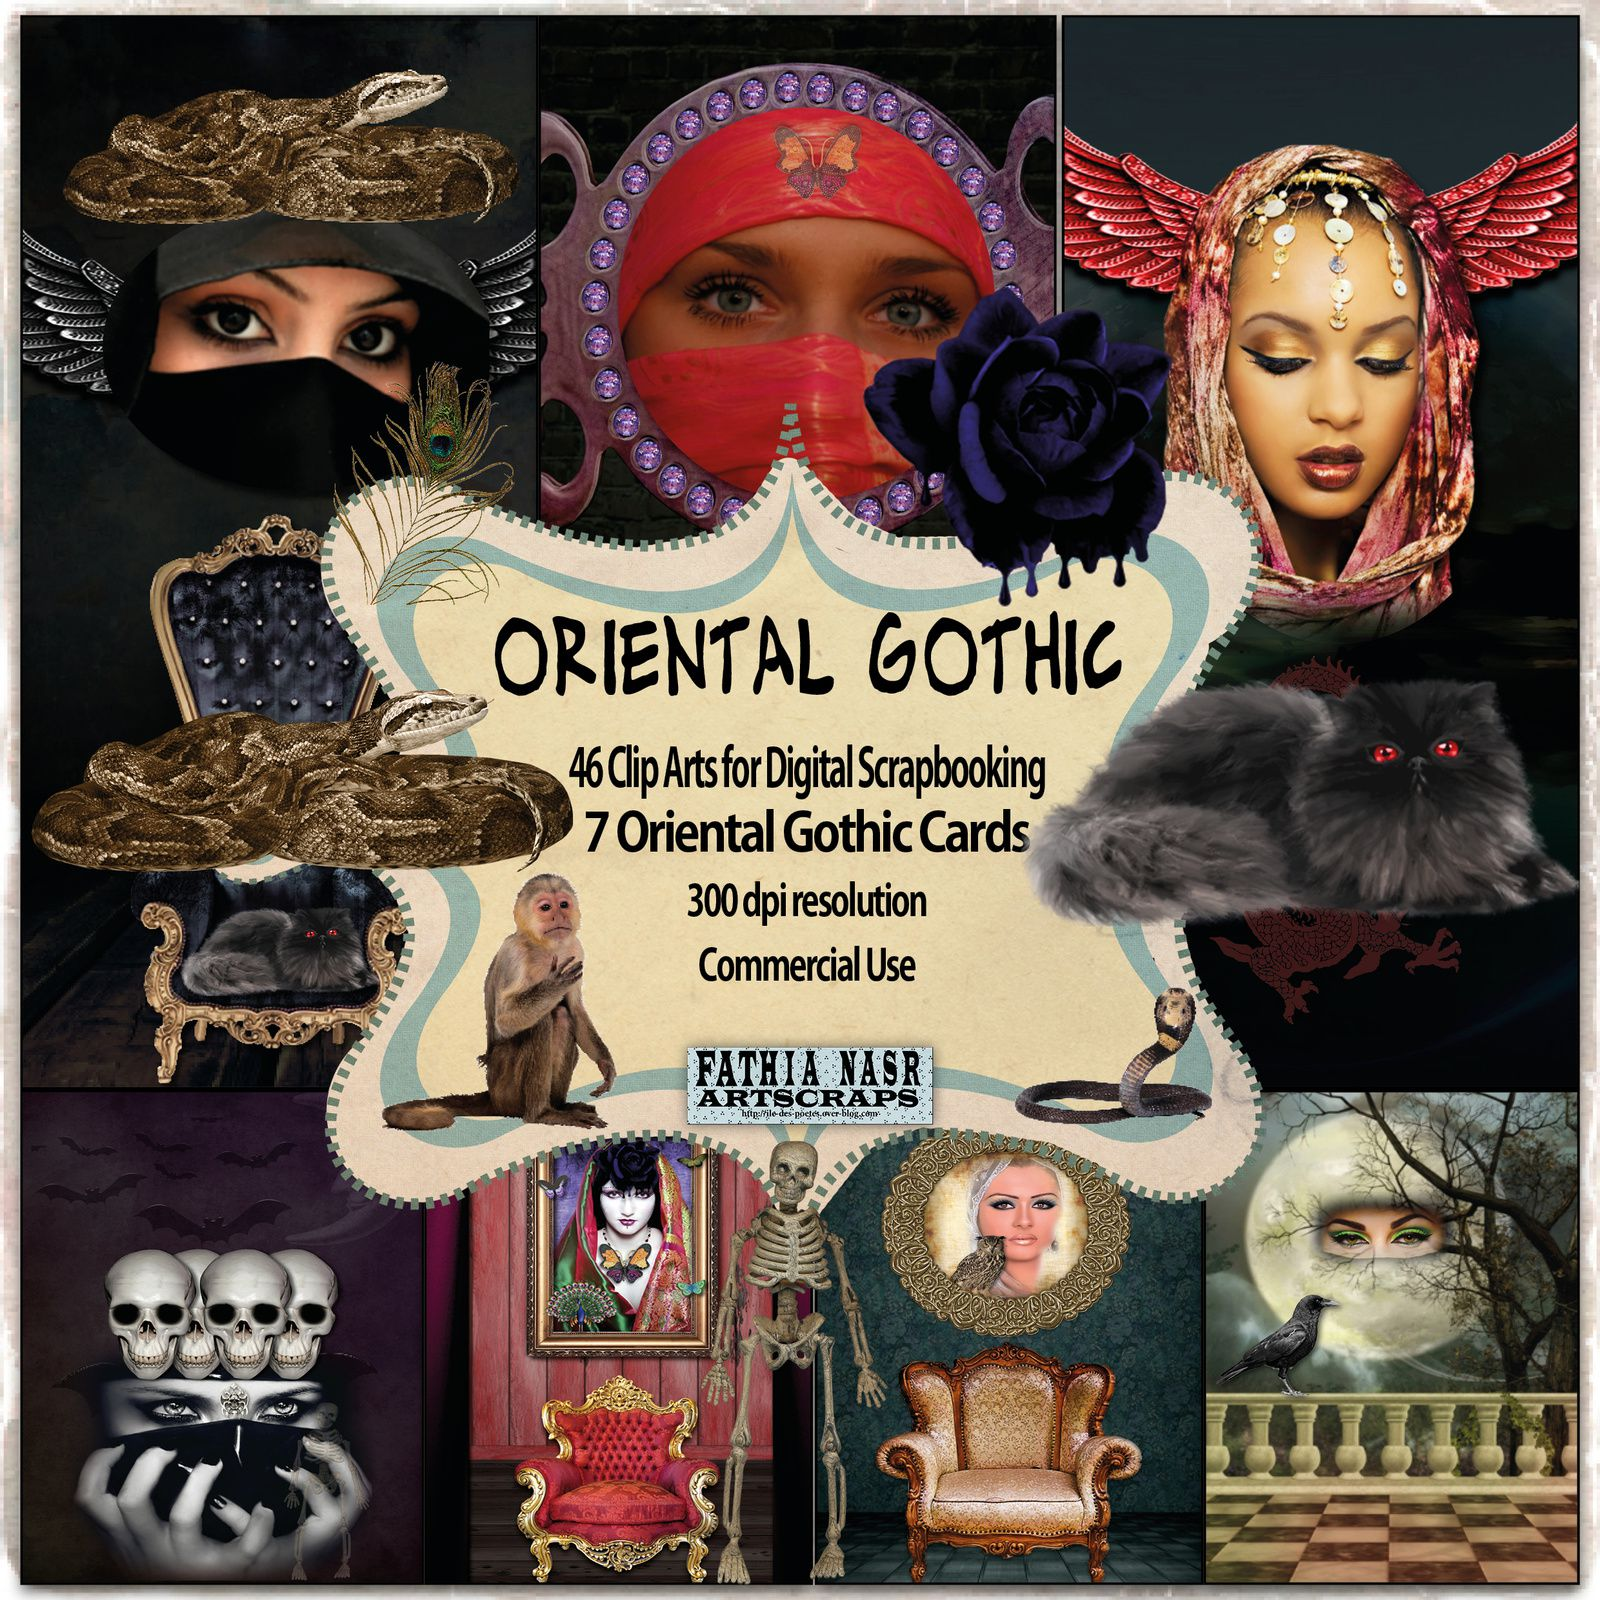 Gothisme-Belles femmes orientales-Cartes-Oriental-Gothic-Halloween-Kit scrapbooking-digital images-amazing gothic cards-Commercial-Use-